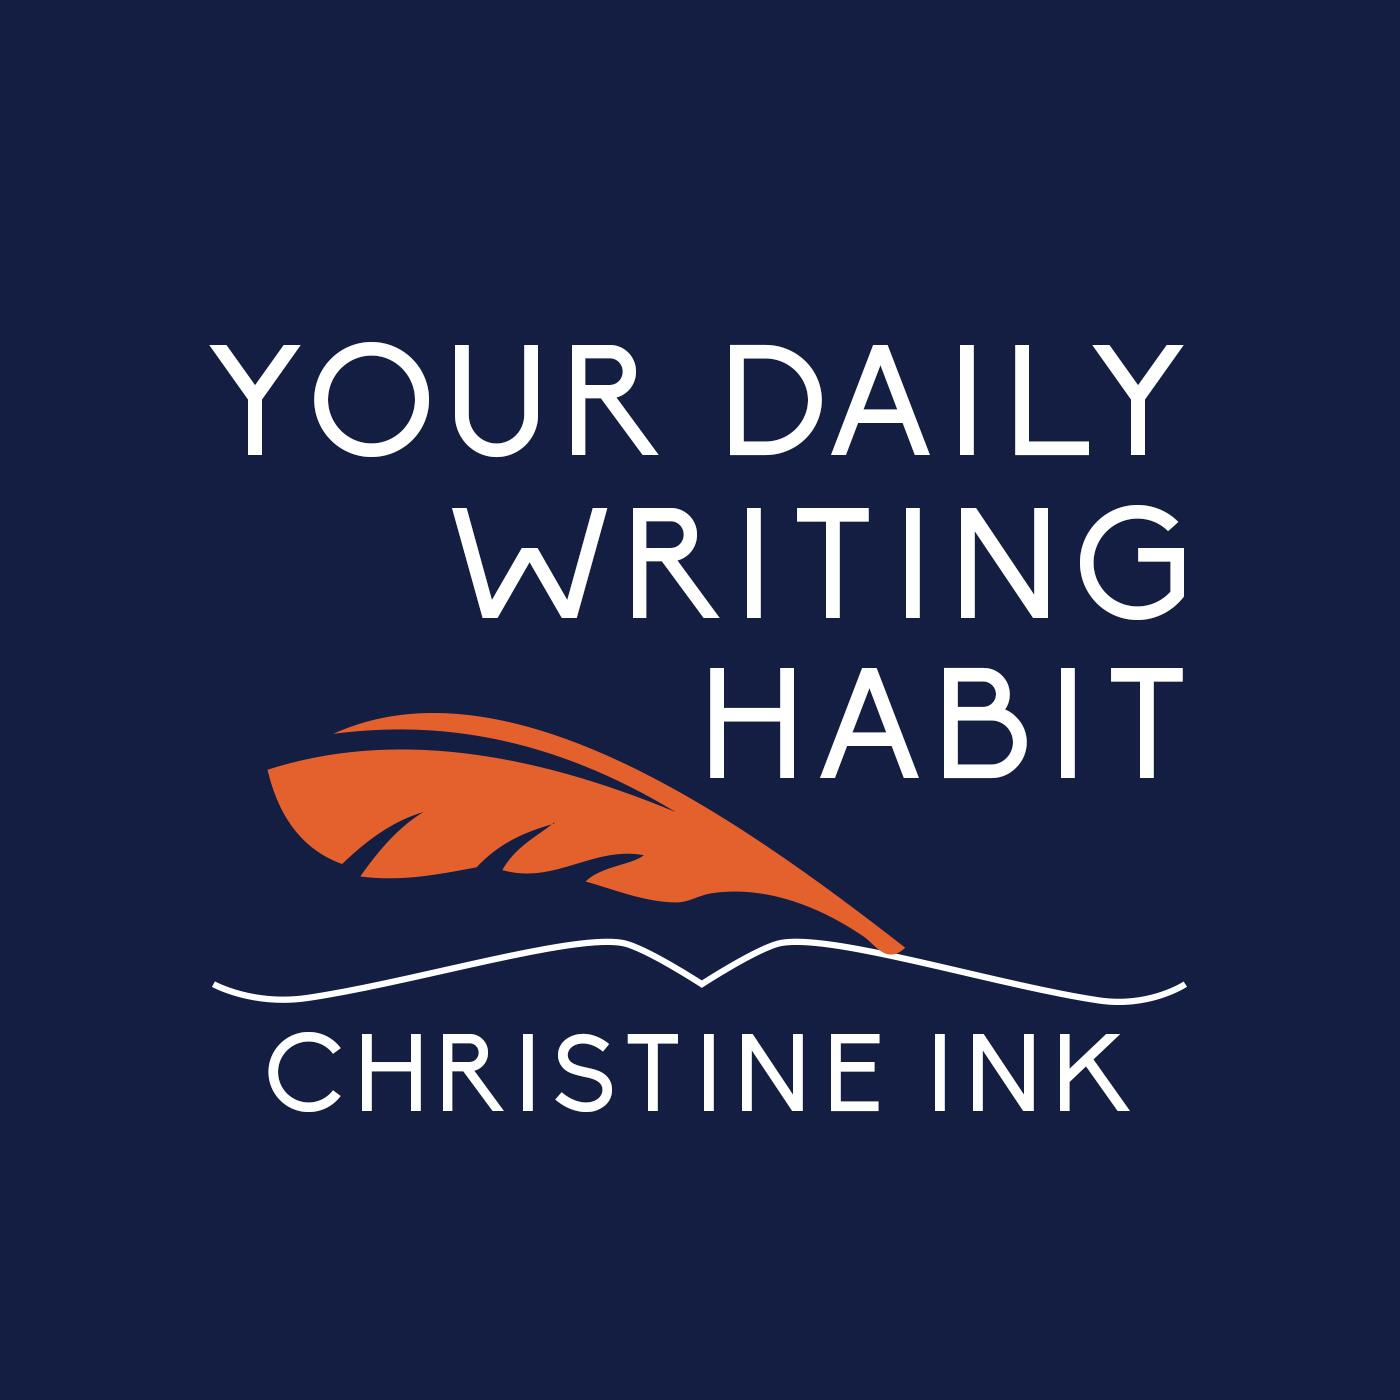 Your Daily Writing Habit